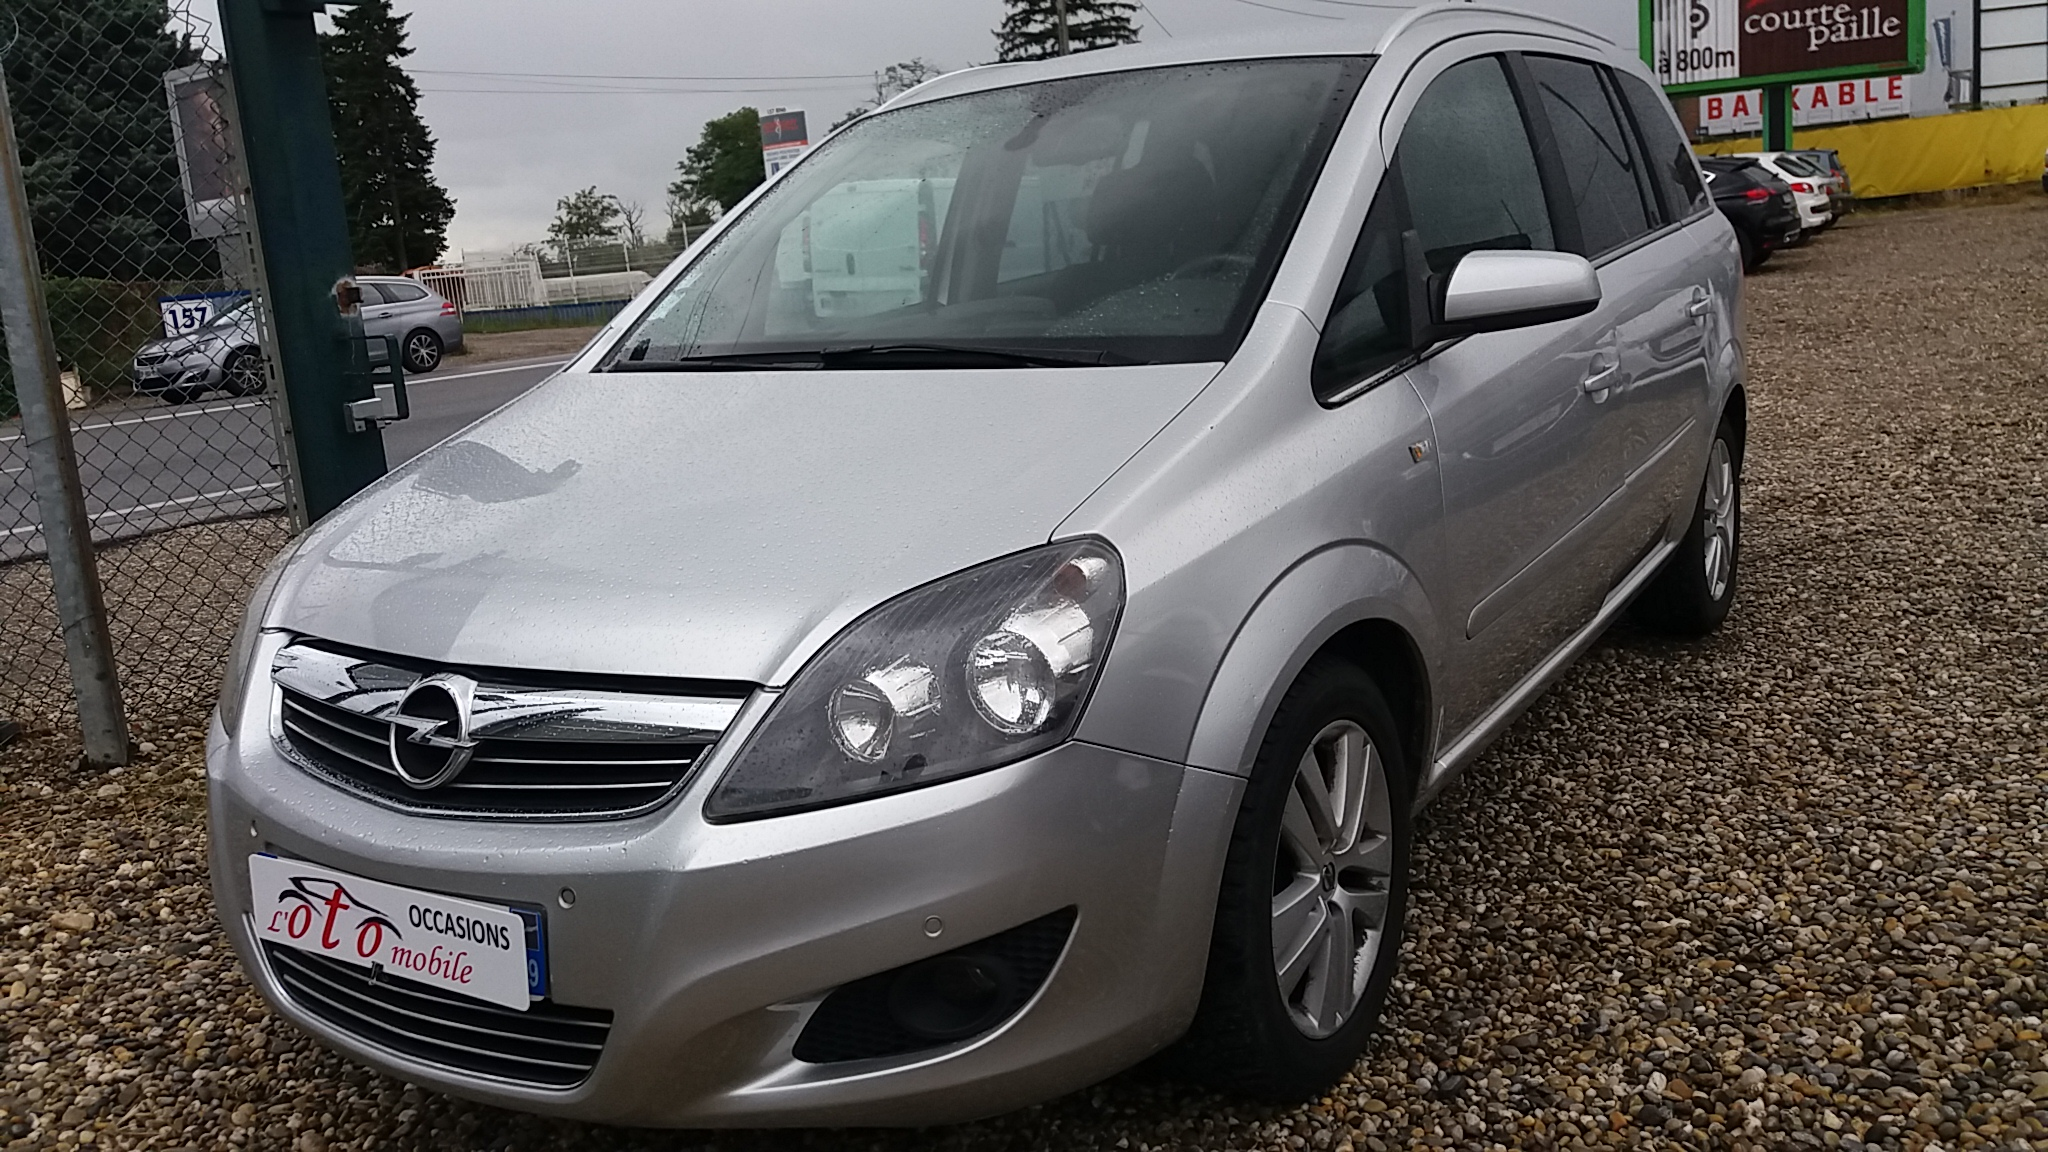 voiture opel zafira 1 7 cdti 125 magnetic occasion diesel 2008 164900 km 5890 saint. Black Bedroom Furniture Sets. Home Design Ideas